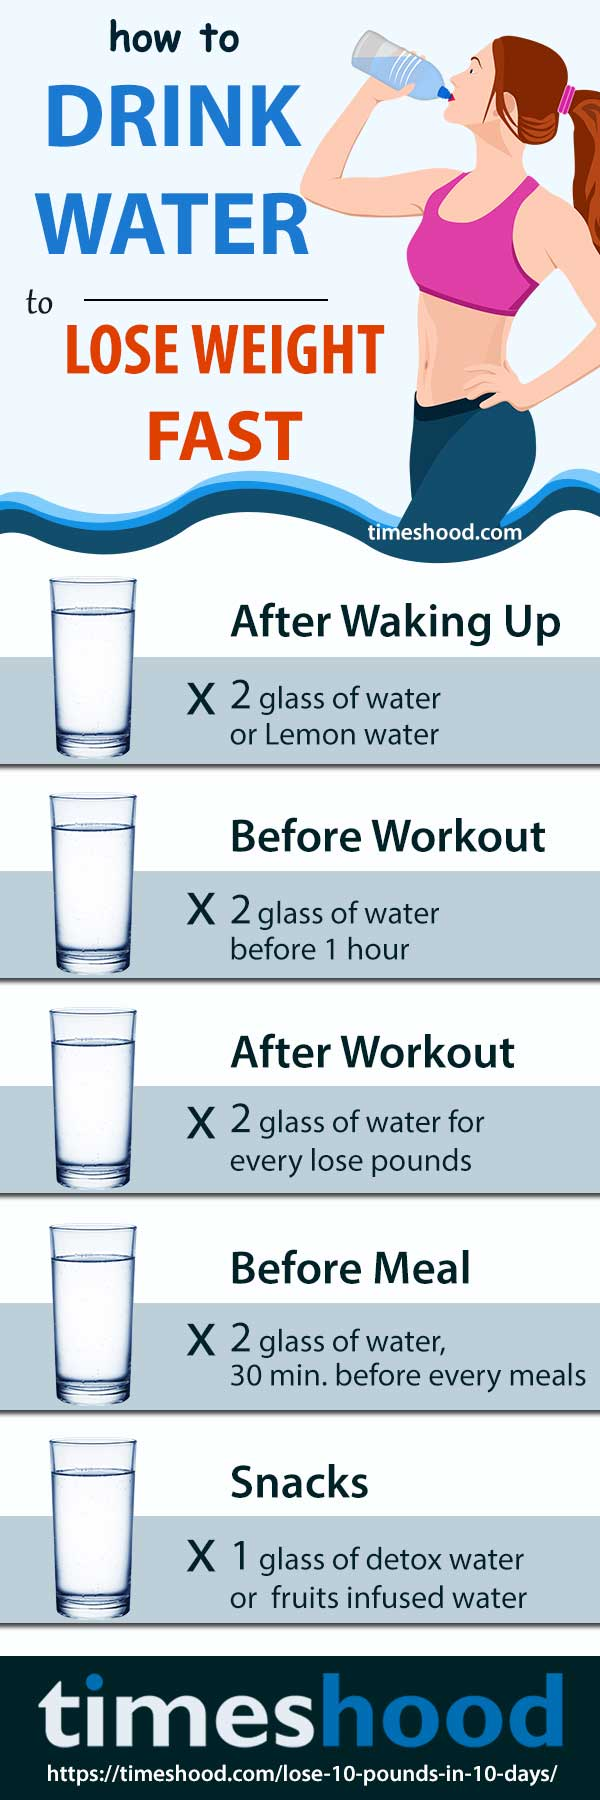 how important is drinking water to lose weight